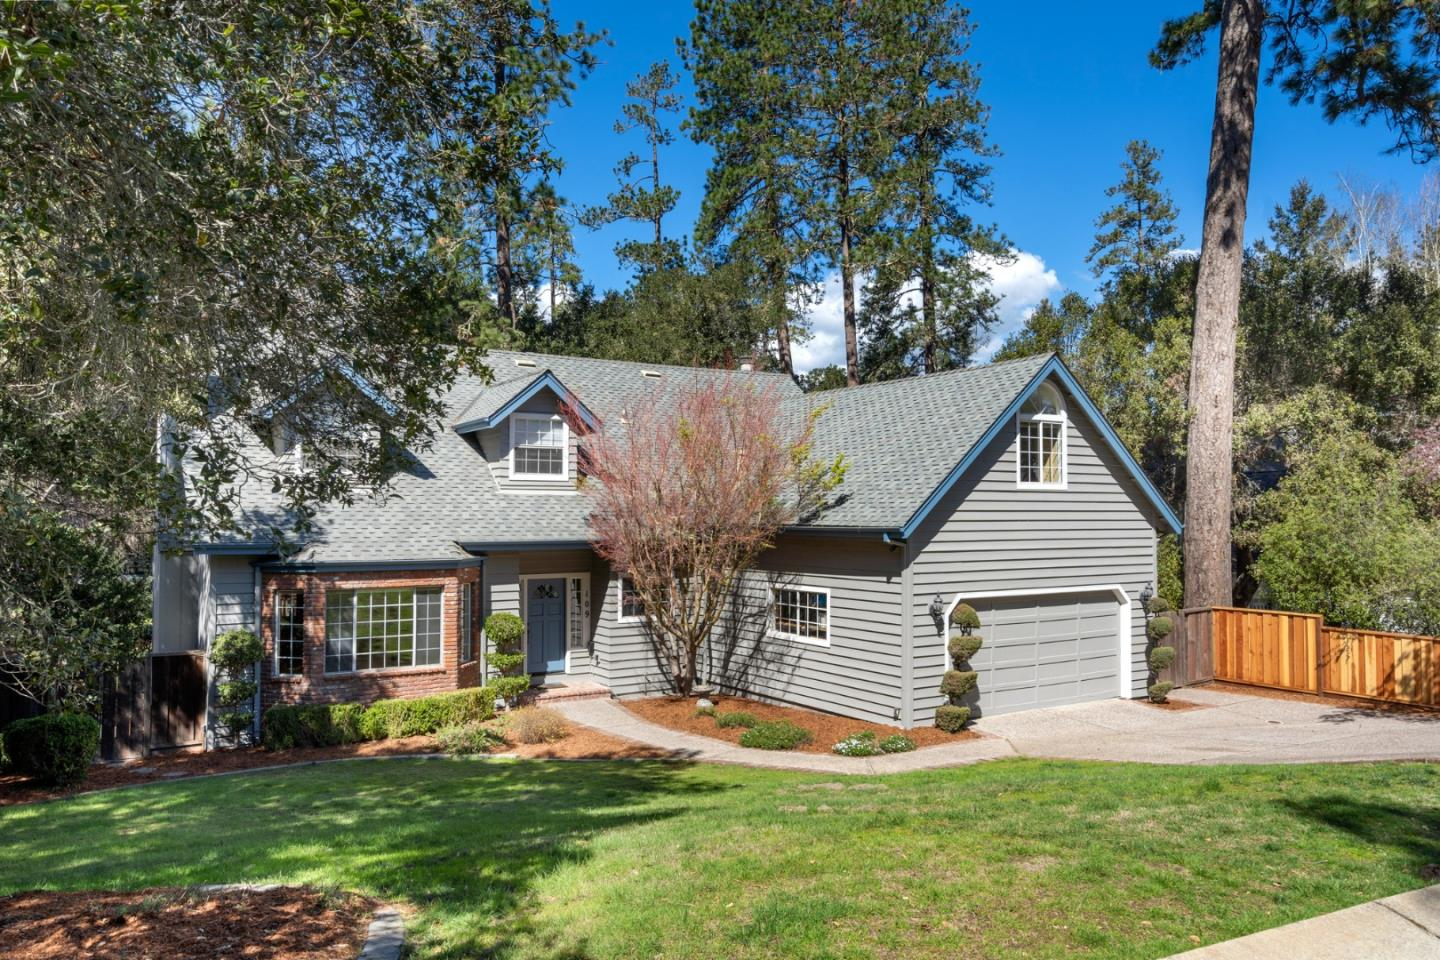 Centrally located in Scotts Valley in the coveted Pinewood Estates, this spacious 4 bedroom + Bonus Room, 3 bathroom home has been meticulously maintained and is looking for a new family to call it home!  Step inside and you'll find a formal dining and living room, spacious kitchen with granite countertops, a gas range, and breakfast nook.  Also located downstairs are a bedroom and full bathroom, perfect for guests or a senior family member. Head upstairs where you'll find two more bedrooms, a second full bathroom, laundry room, large bonus room, and sprawling master suite.  The master suite features a large walk-in closet and bathroom with a jetted tub and walk-in shower. Other property features include two fireplaces, a two-car garage, new redwood deck, and storage area beneath the house complete with a utility sink, electricity, and a dog door that leads to a fenced-in dog run.